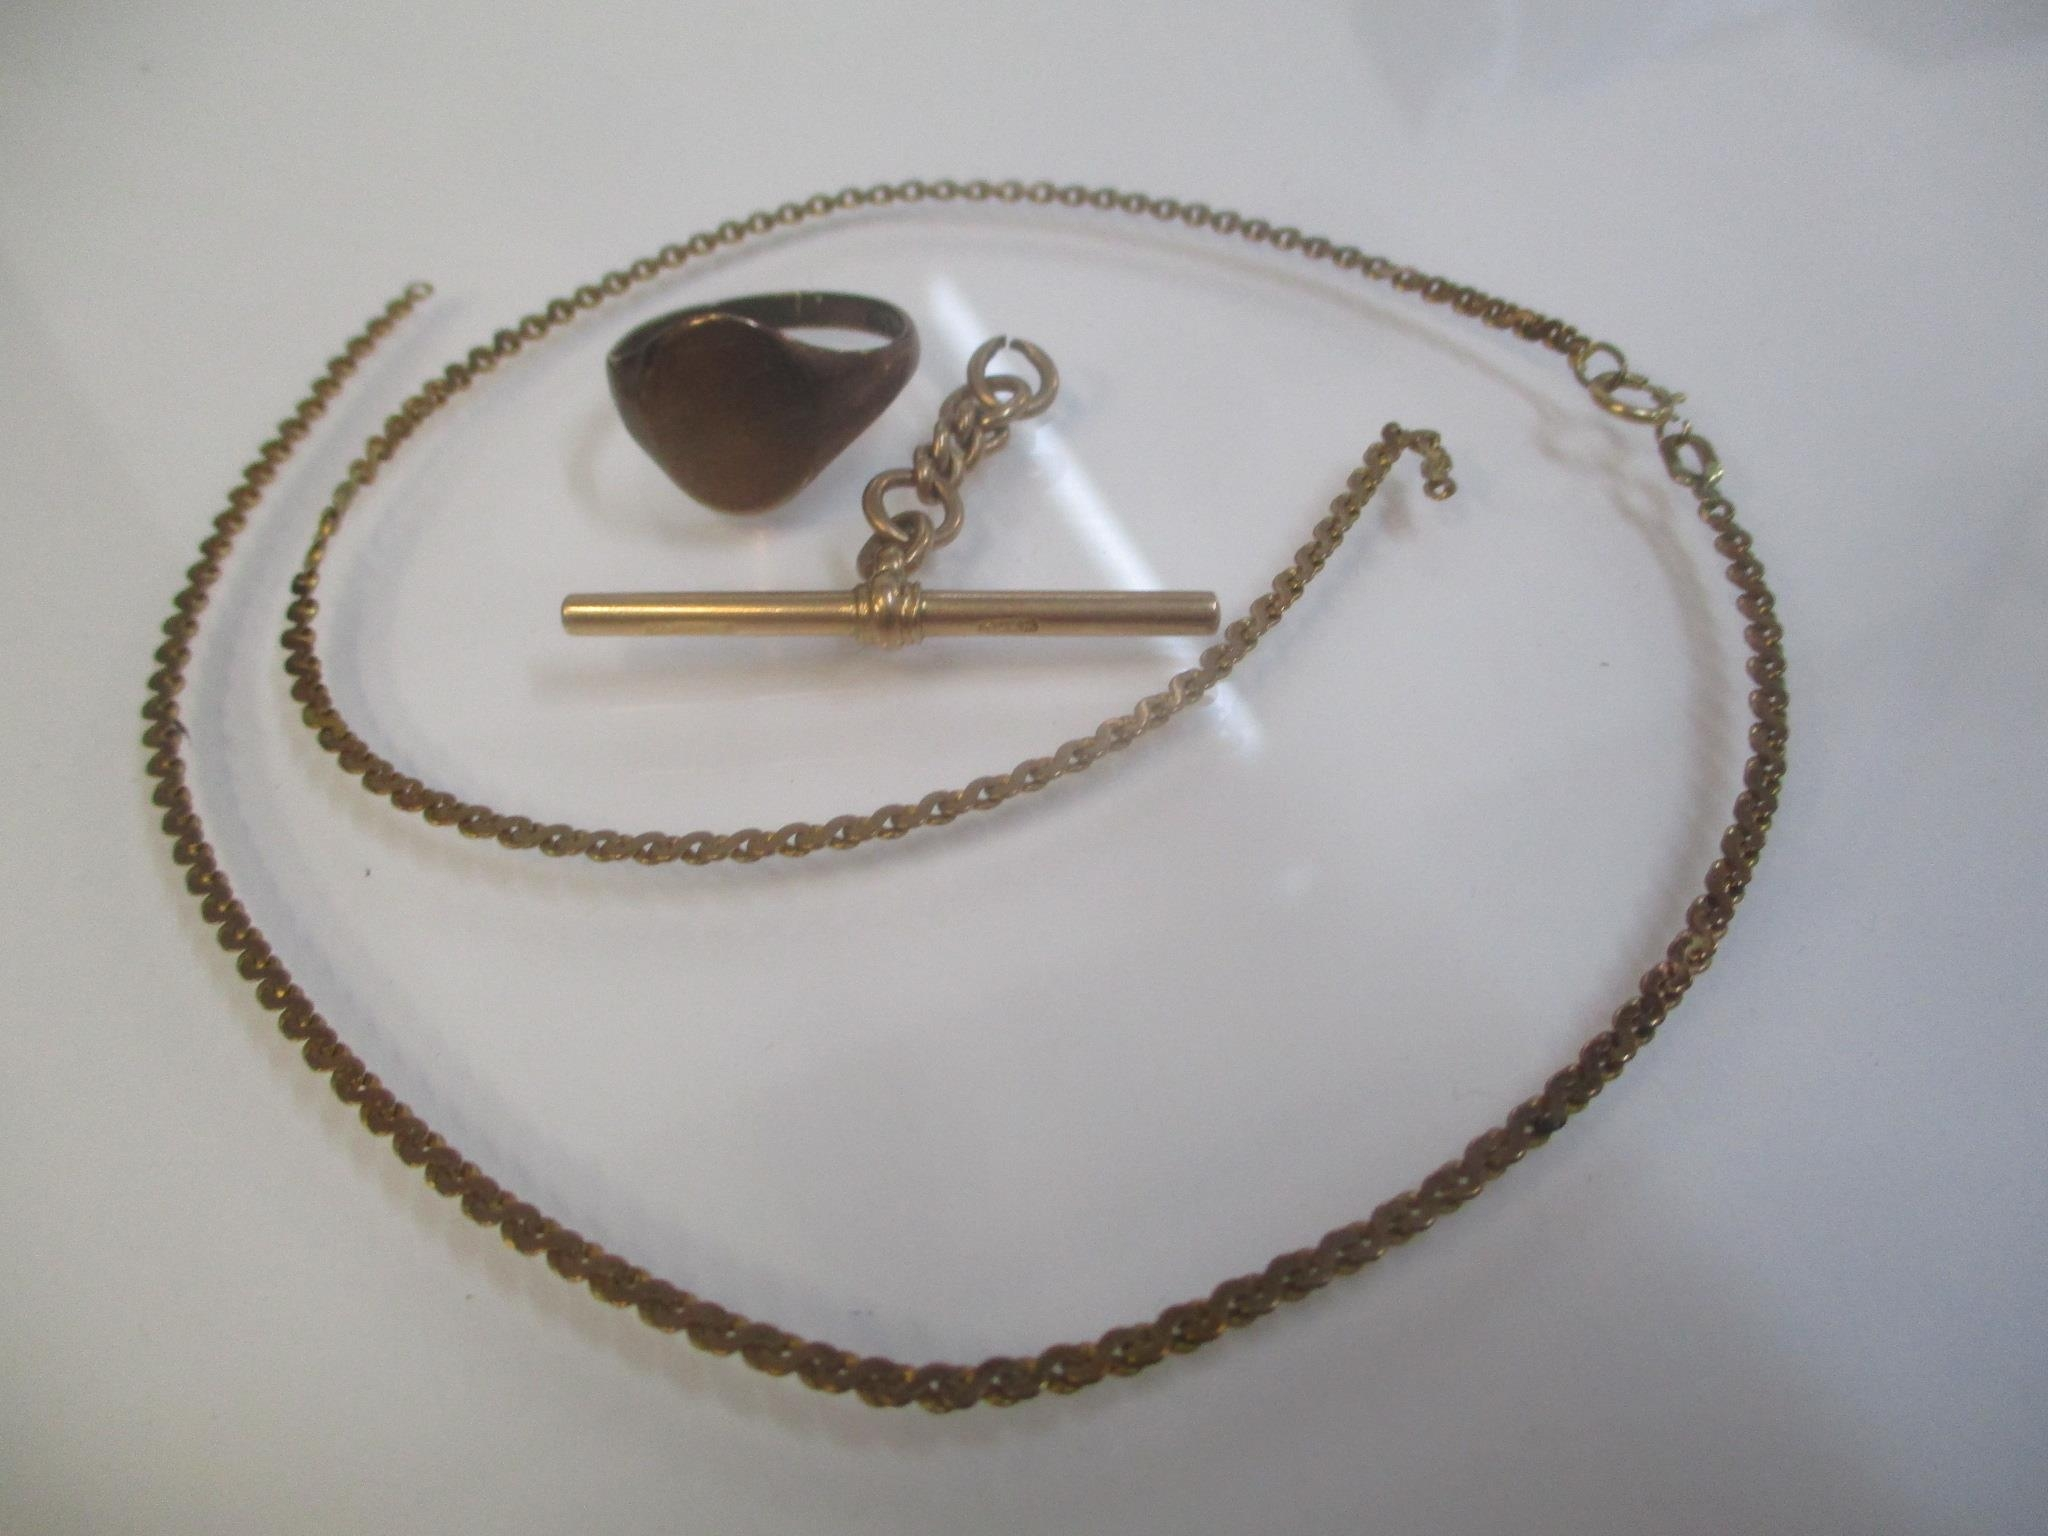 9ct gold to include a T bar, a signet ring and a necklace, 11.6g